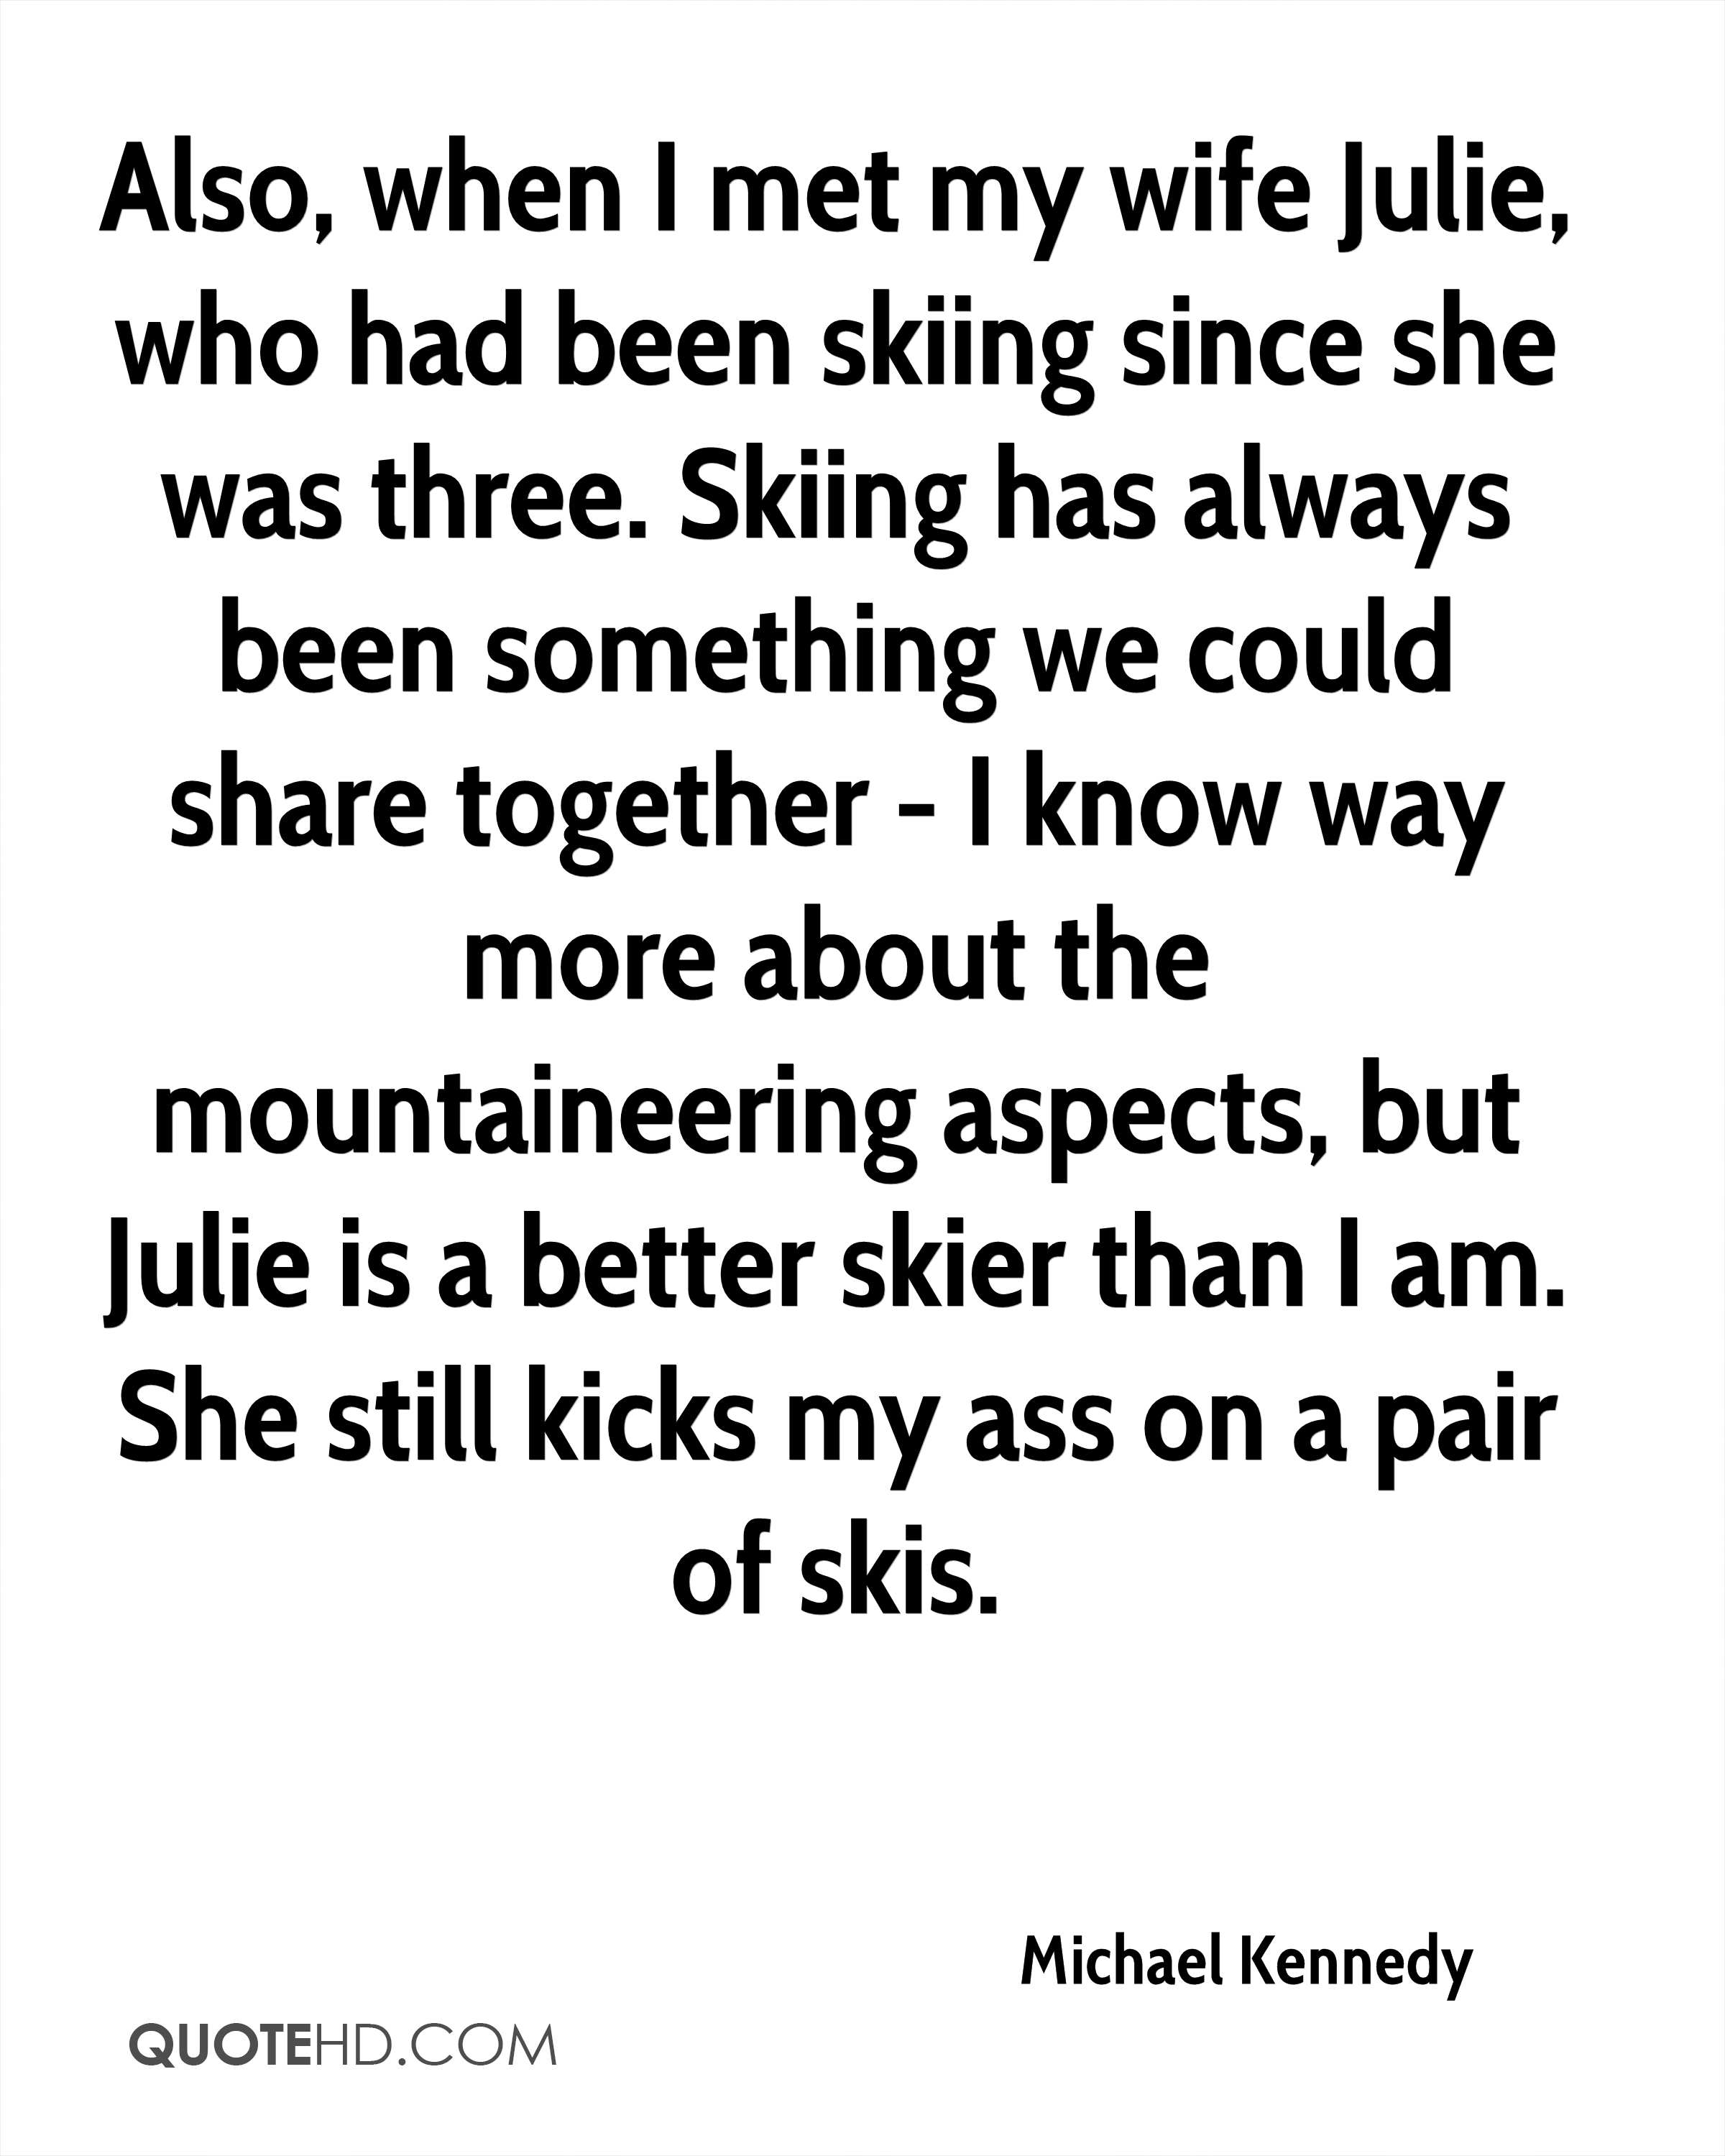 Also, when I met my wife Julie, who had been skiing since she was three. Skiing has always been something we could share together - I know way more about the mountaineering aspects, but Julie is a better skier than I am. She still kicks my ass on a pair of skis.